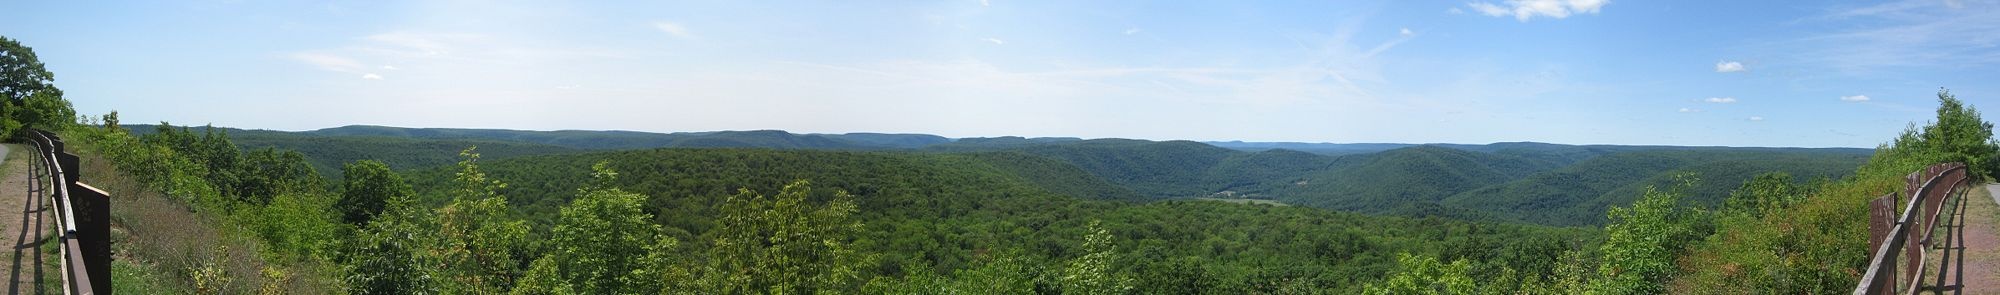 View from a fenced overlook of wooded low mountains whose peaks are all nearly the same height